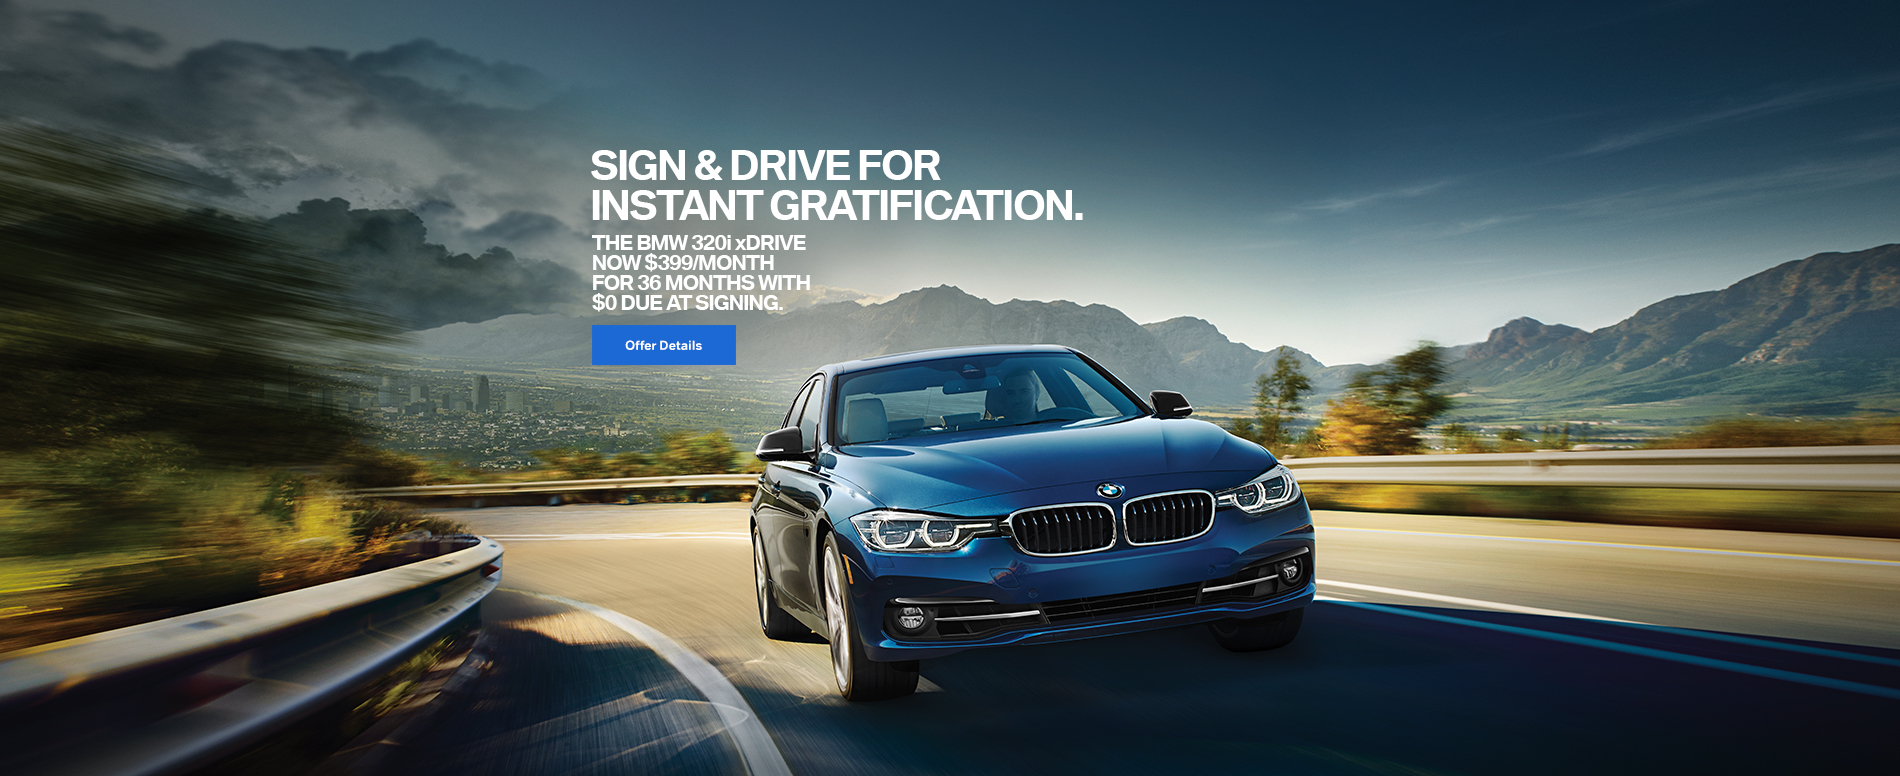 LEASE A 2017 320i xDrive FOR $399/MO FOR 36 MONTHS